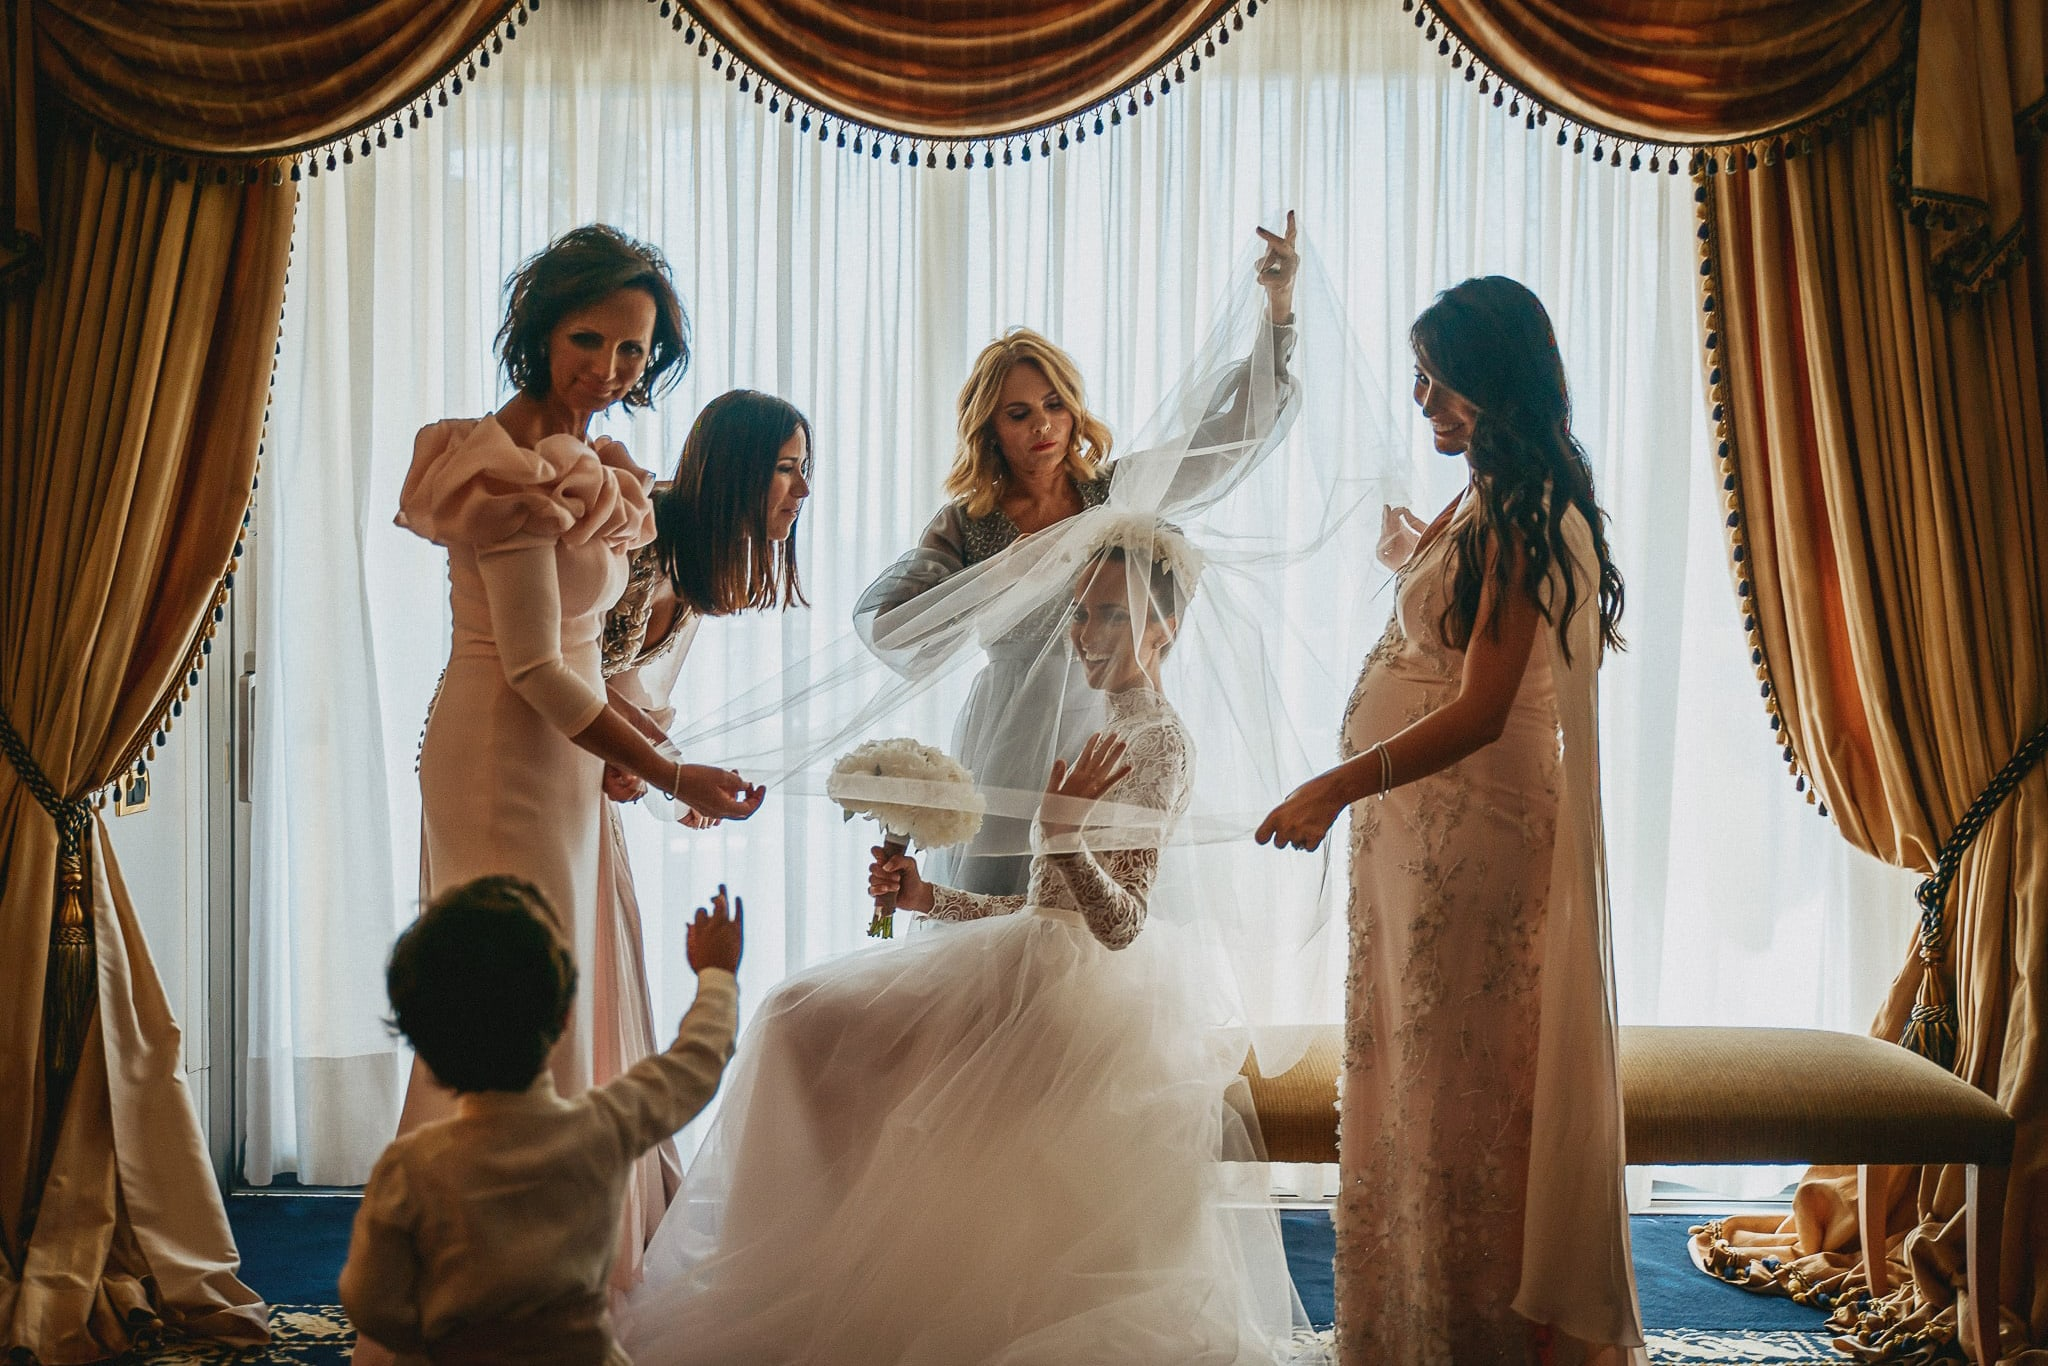 the bride wears a veil in a hotel room helped by her mother and bridesmaids before the wedding in Rome